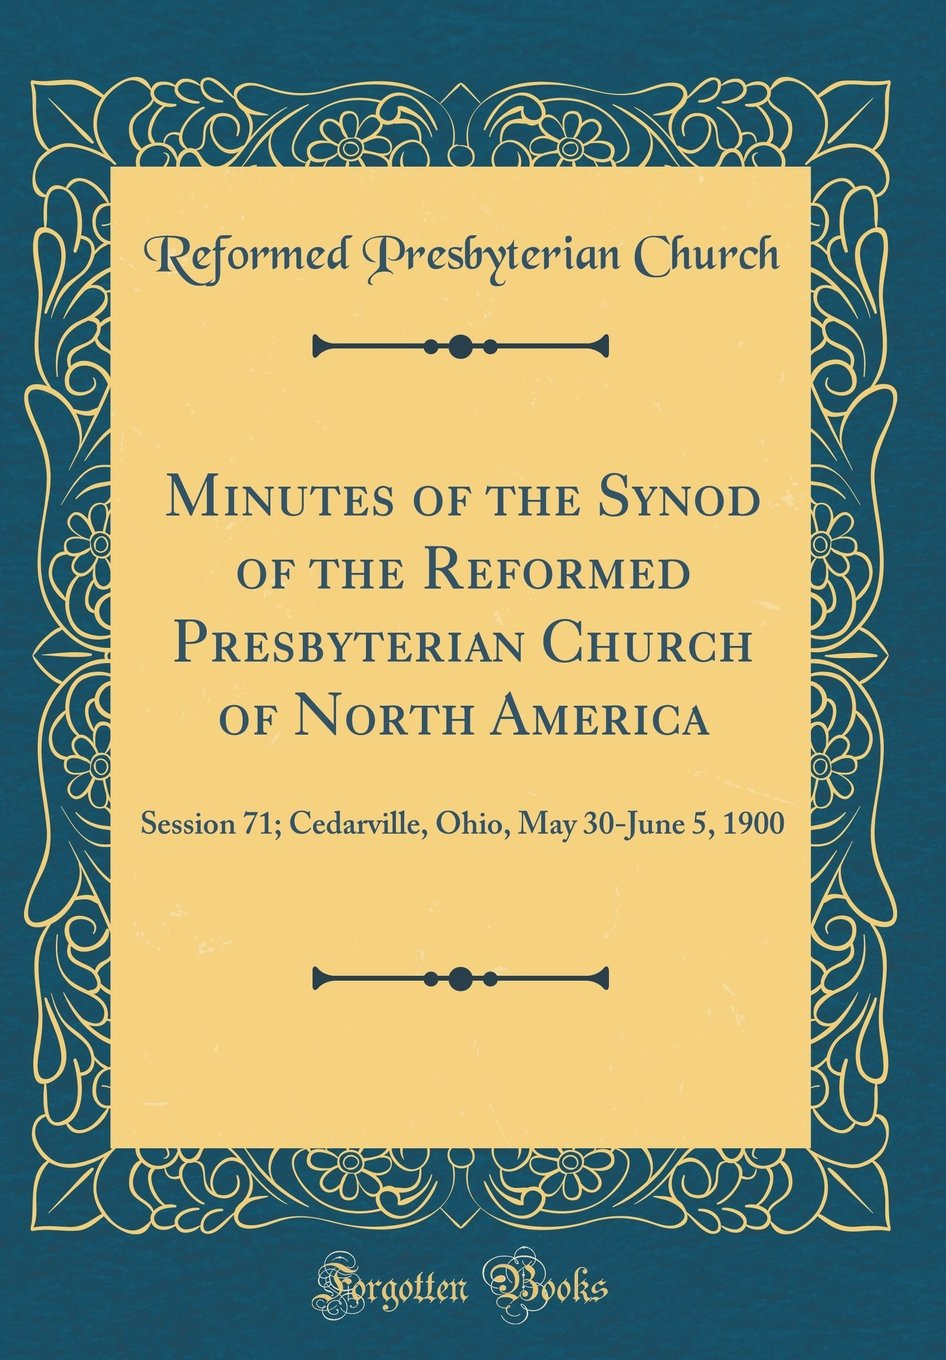 Minutes of the Synod of the Reformed Presbyterian Church of North America: Session 71; Cedarville, Ohio, May 30-June 5, 1900 (Classic Reprint) pdf epub